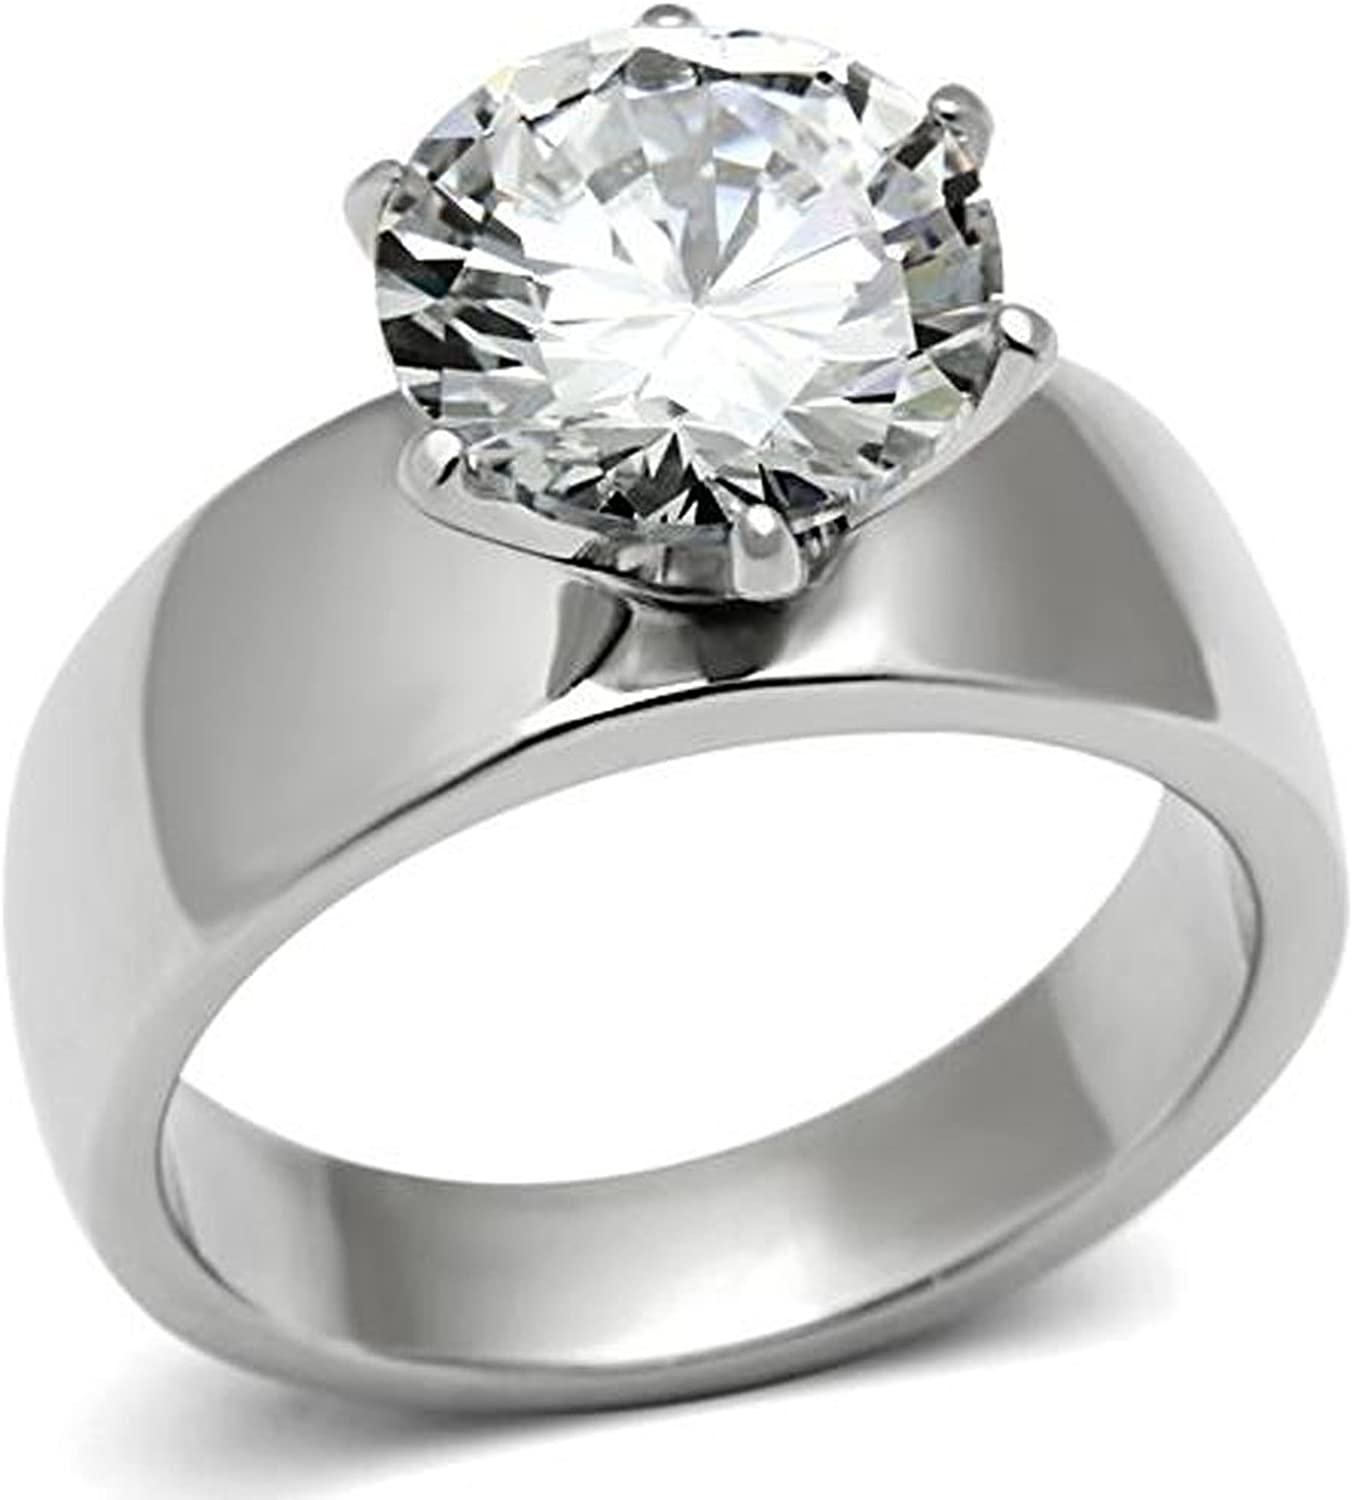 Amazon Com Lanyjewelry Wide Band Big Solitaire 3 5 Carat Cz Womens Stainless Steel Wedding Ring Jewelry